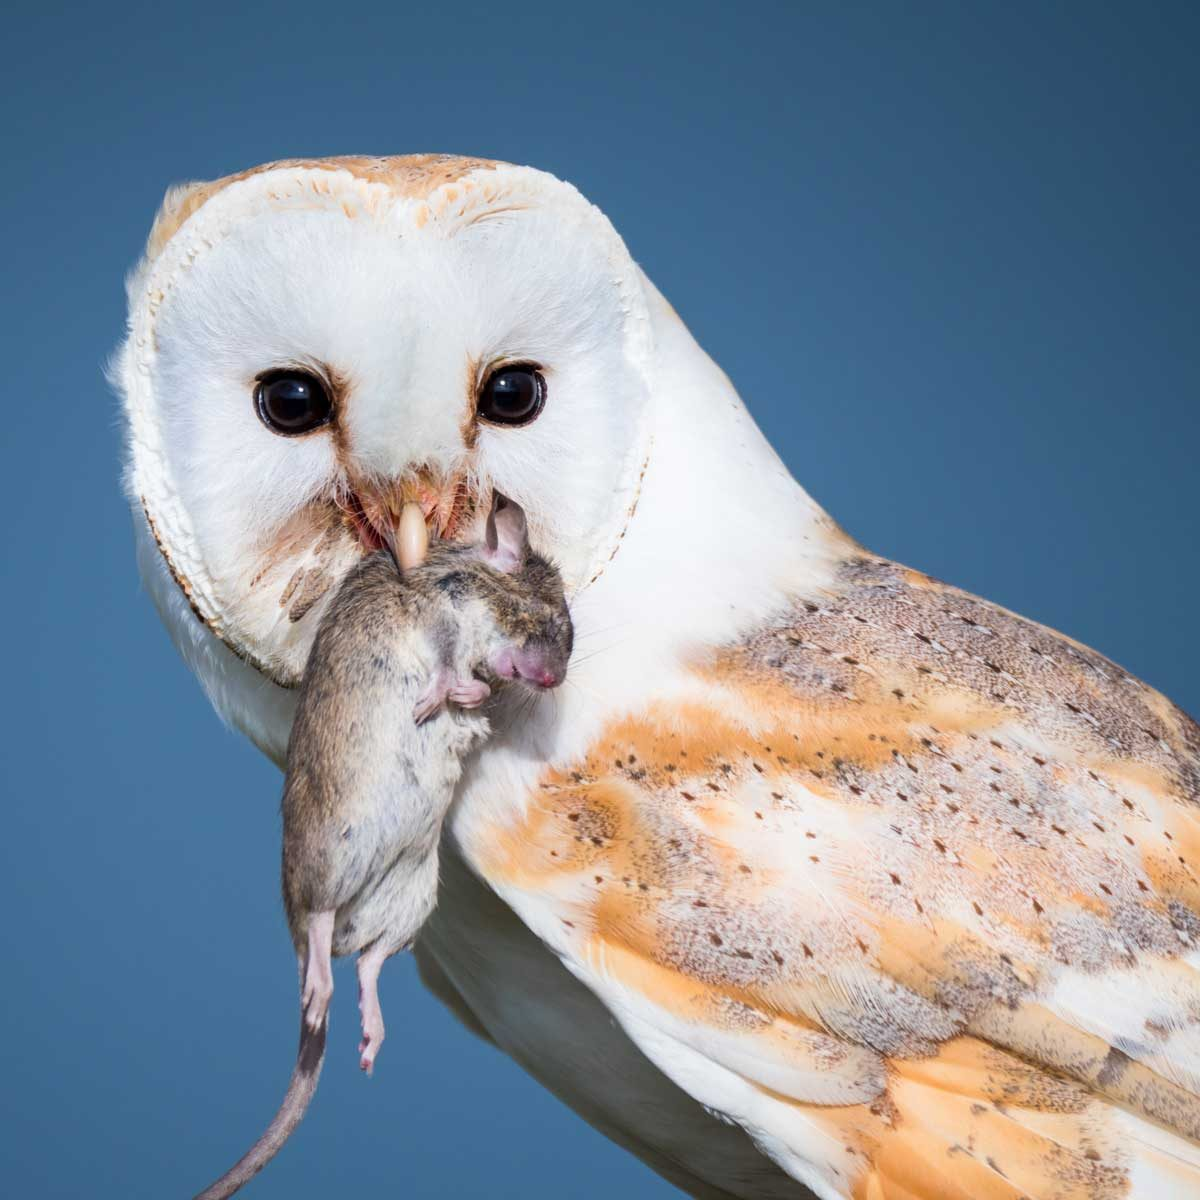 Owl eating a rodent